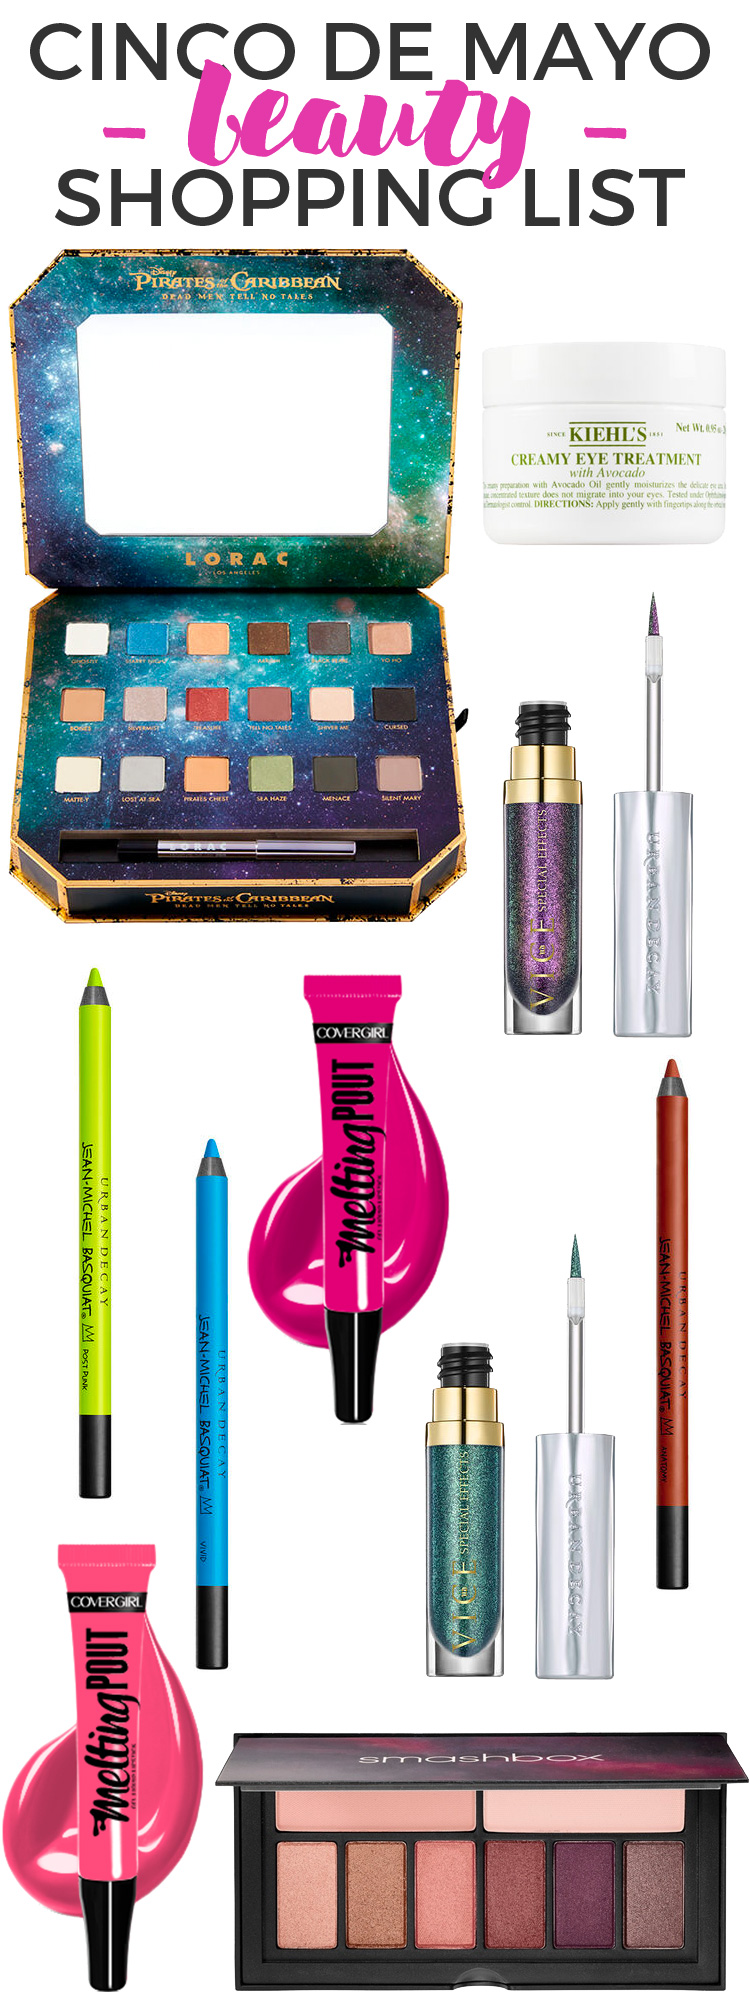 Cinco de Mayo Beauty Shopping List